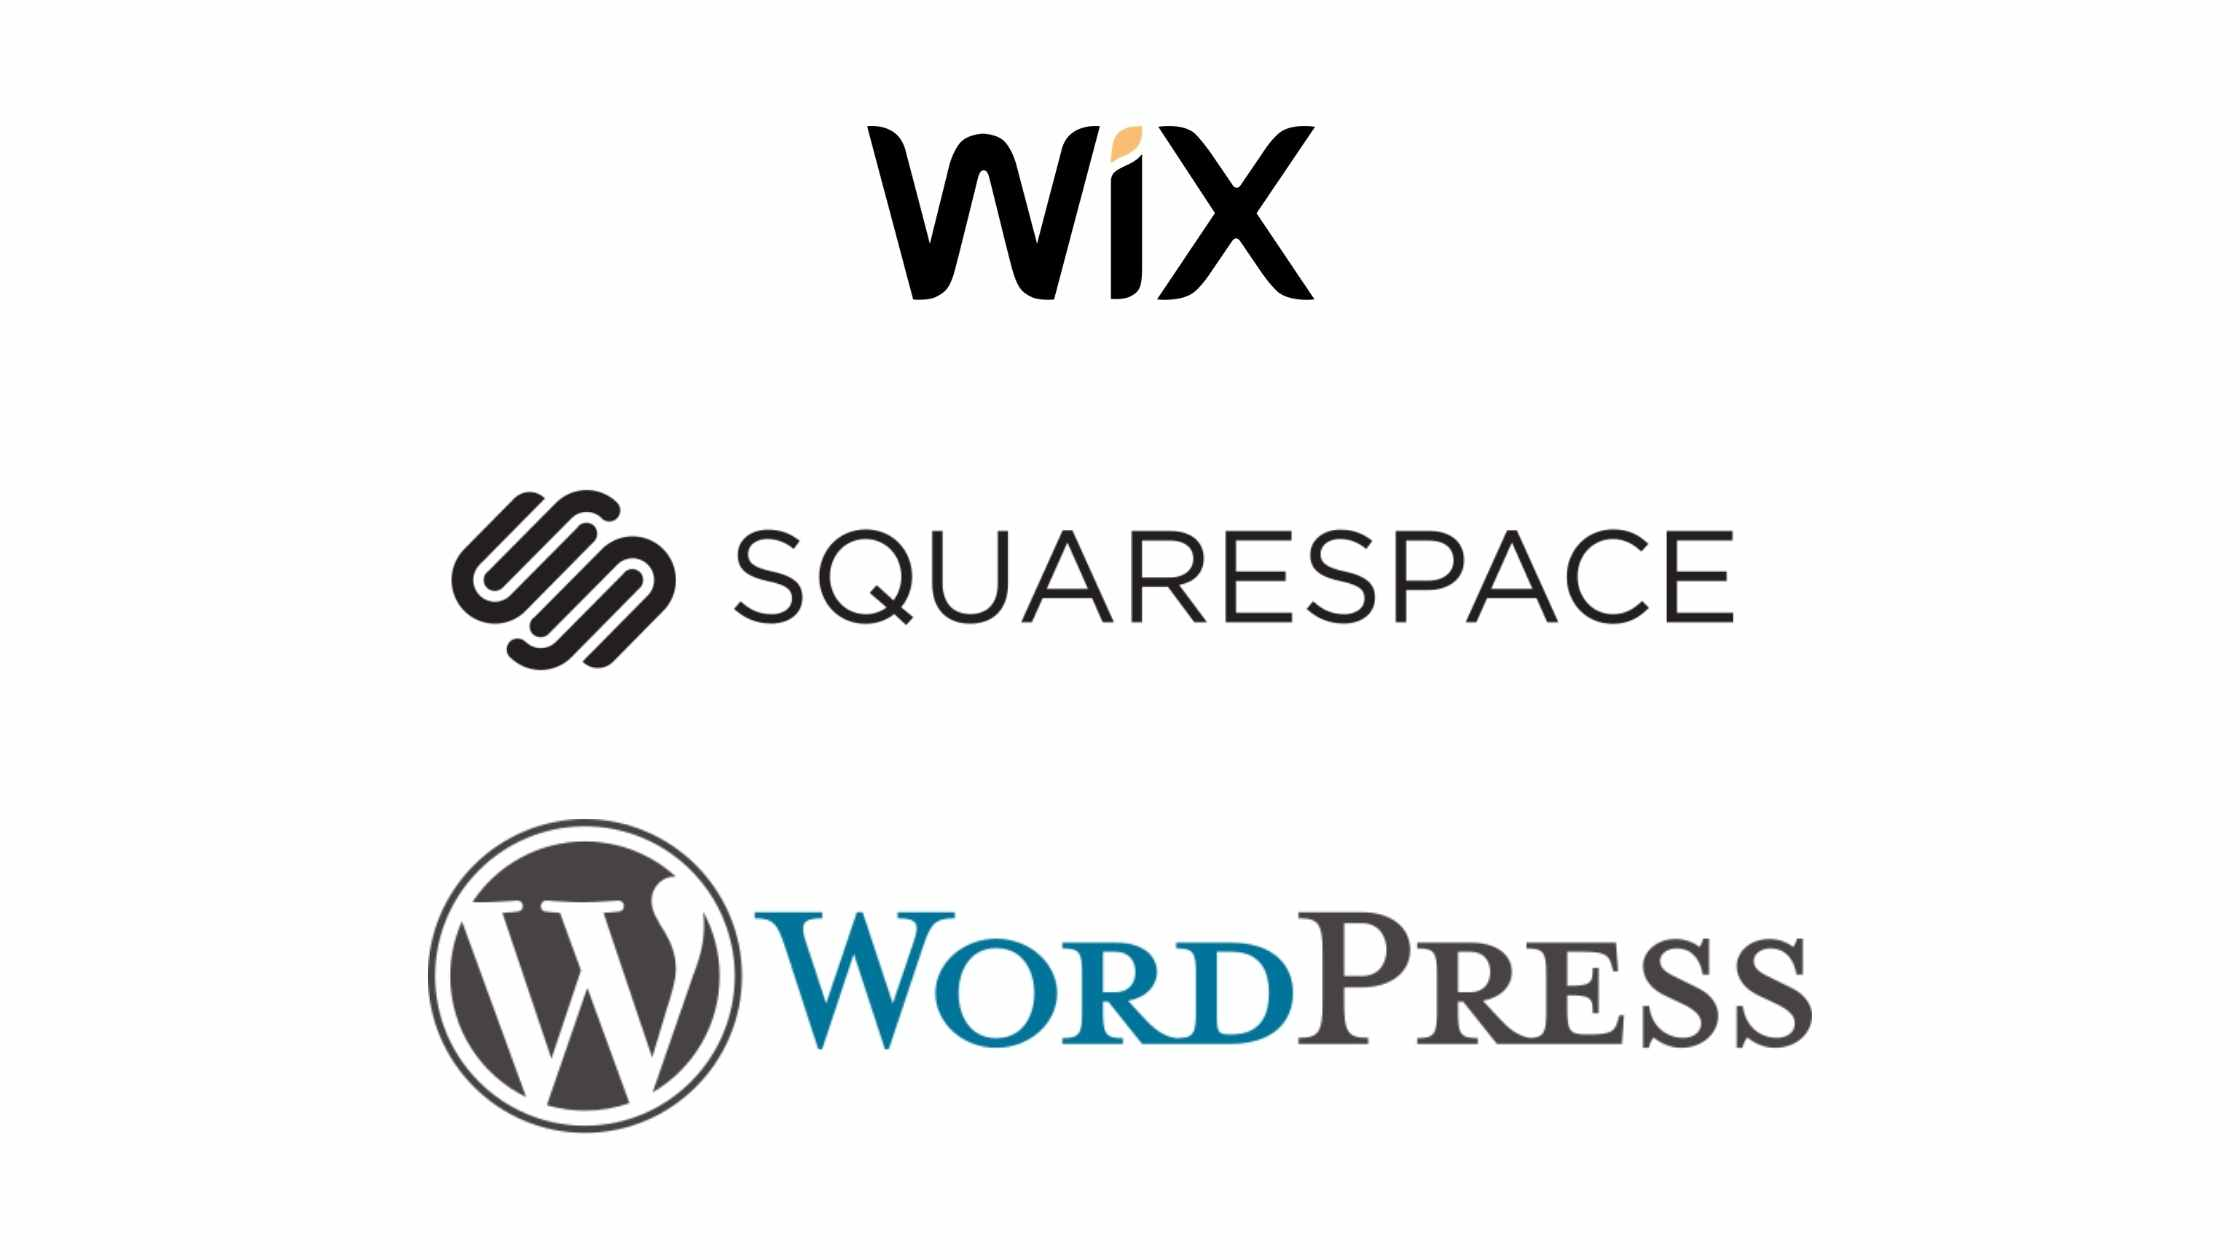 wix squarespace wordpress